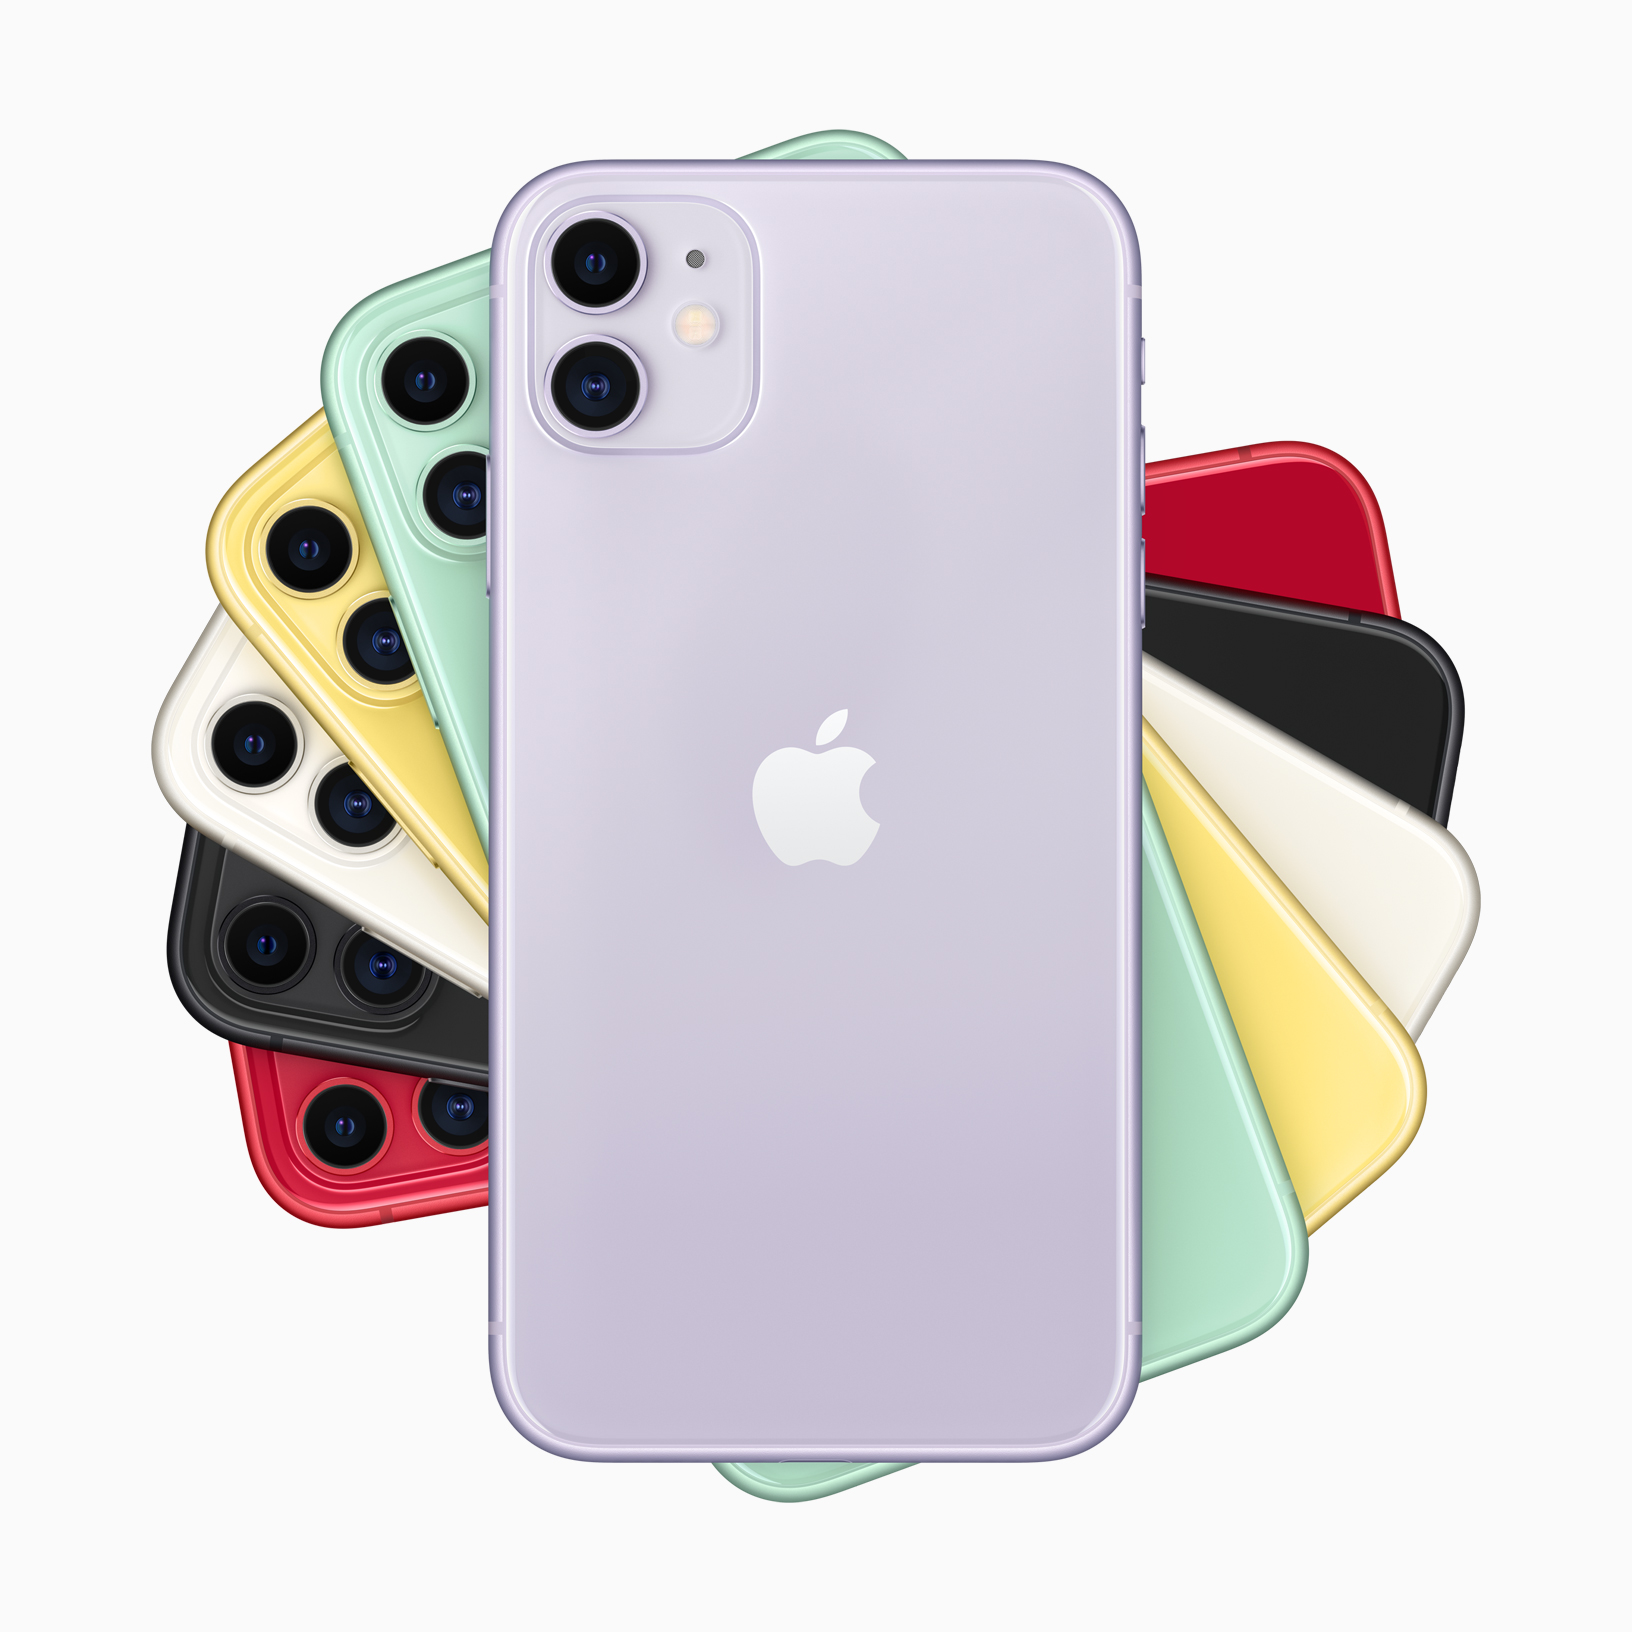 Apple iPhone 11 and more